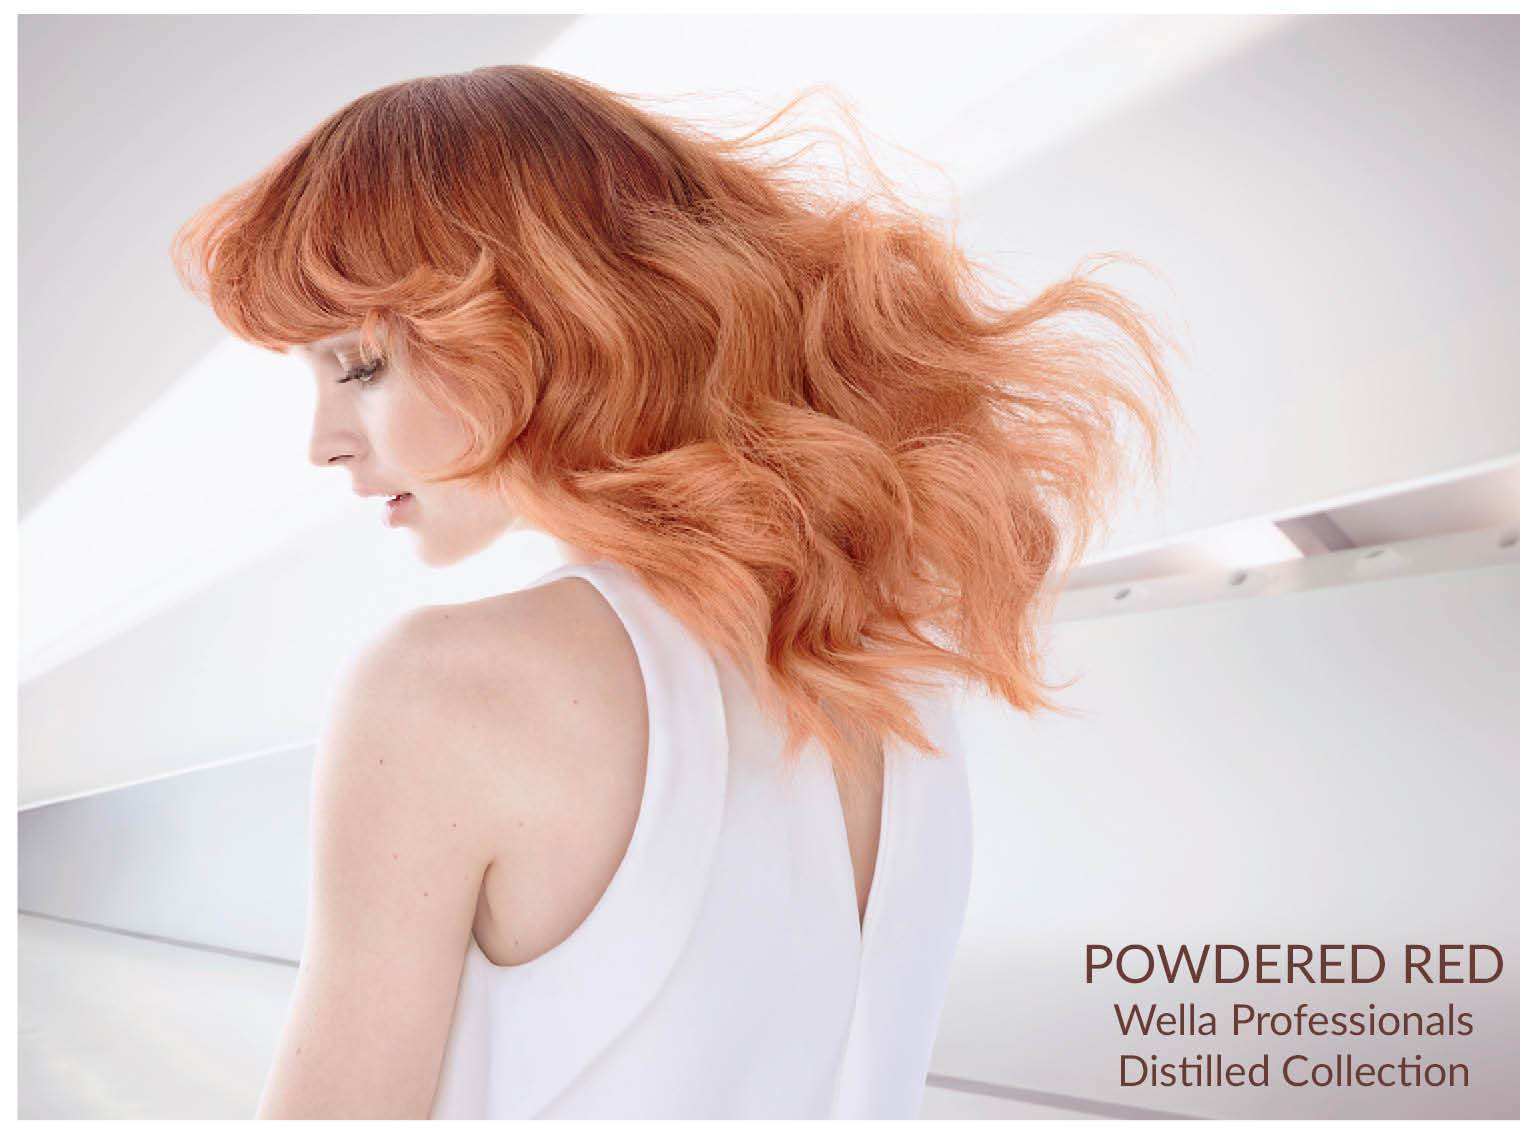 wella powdered red model